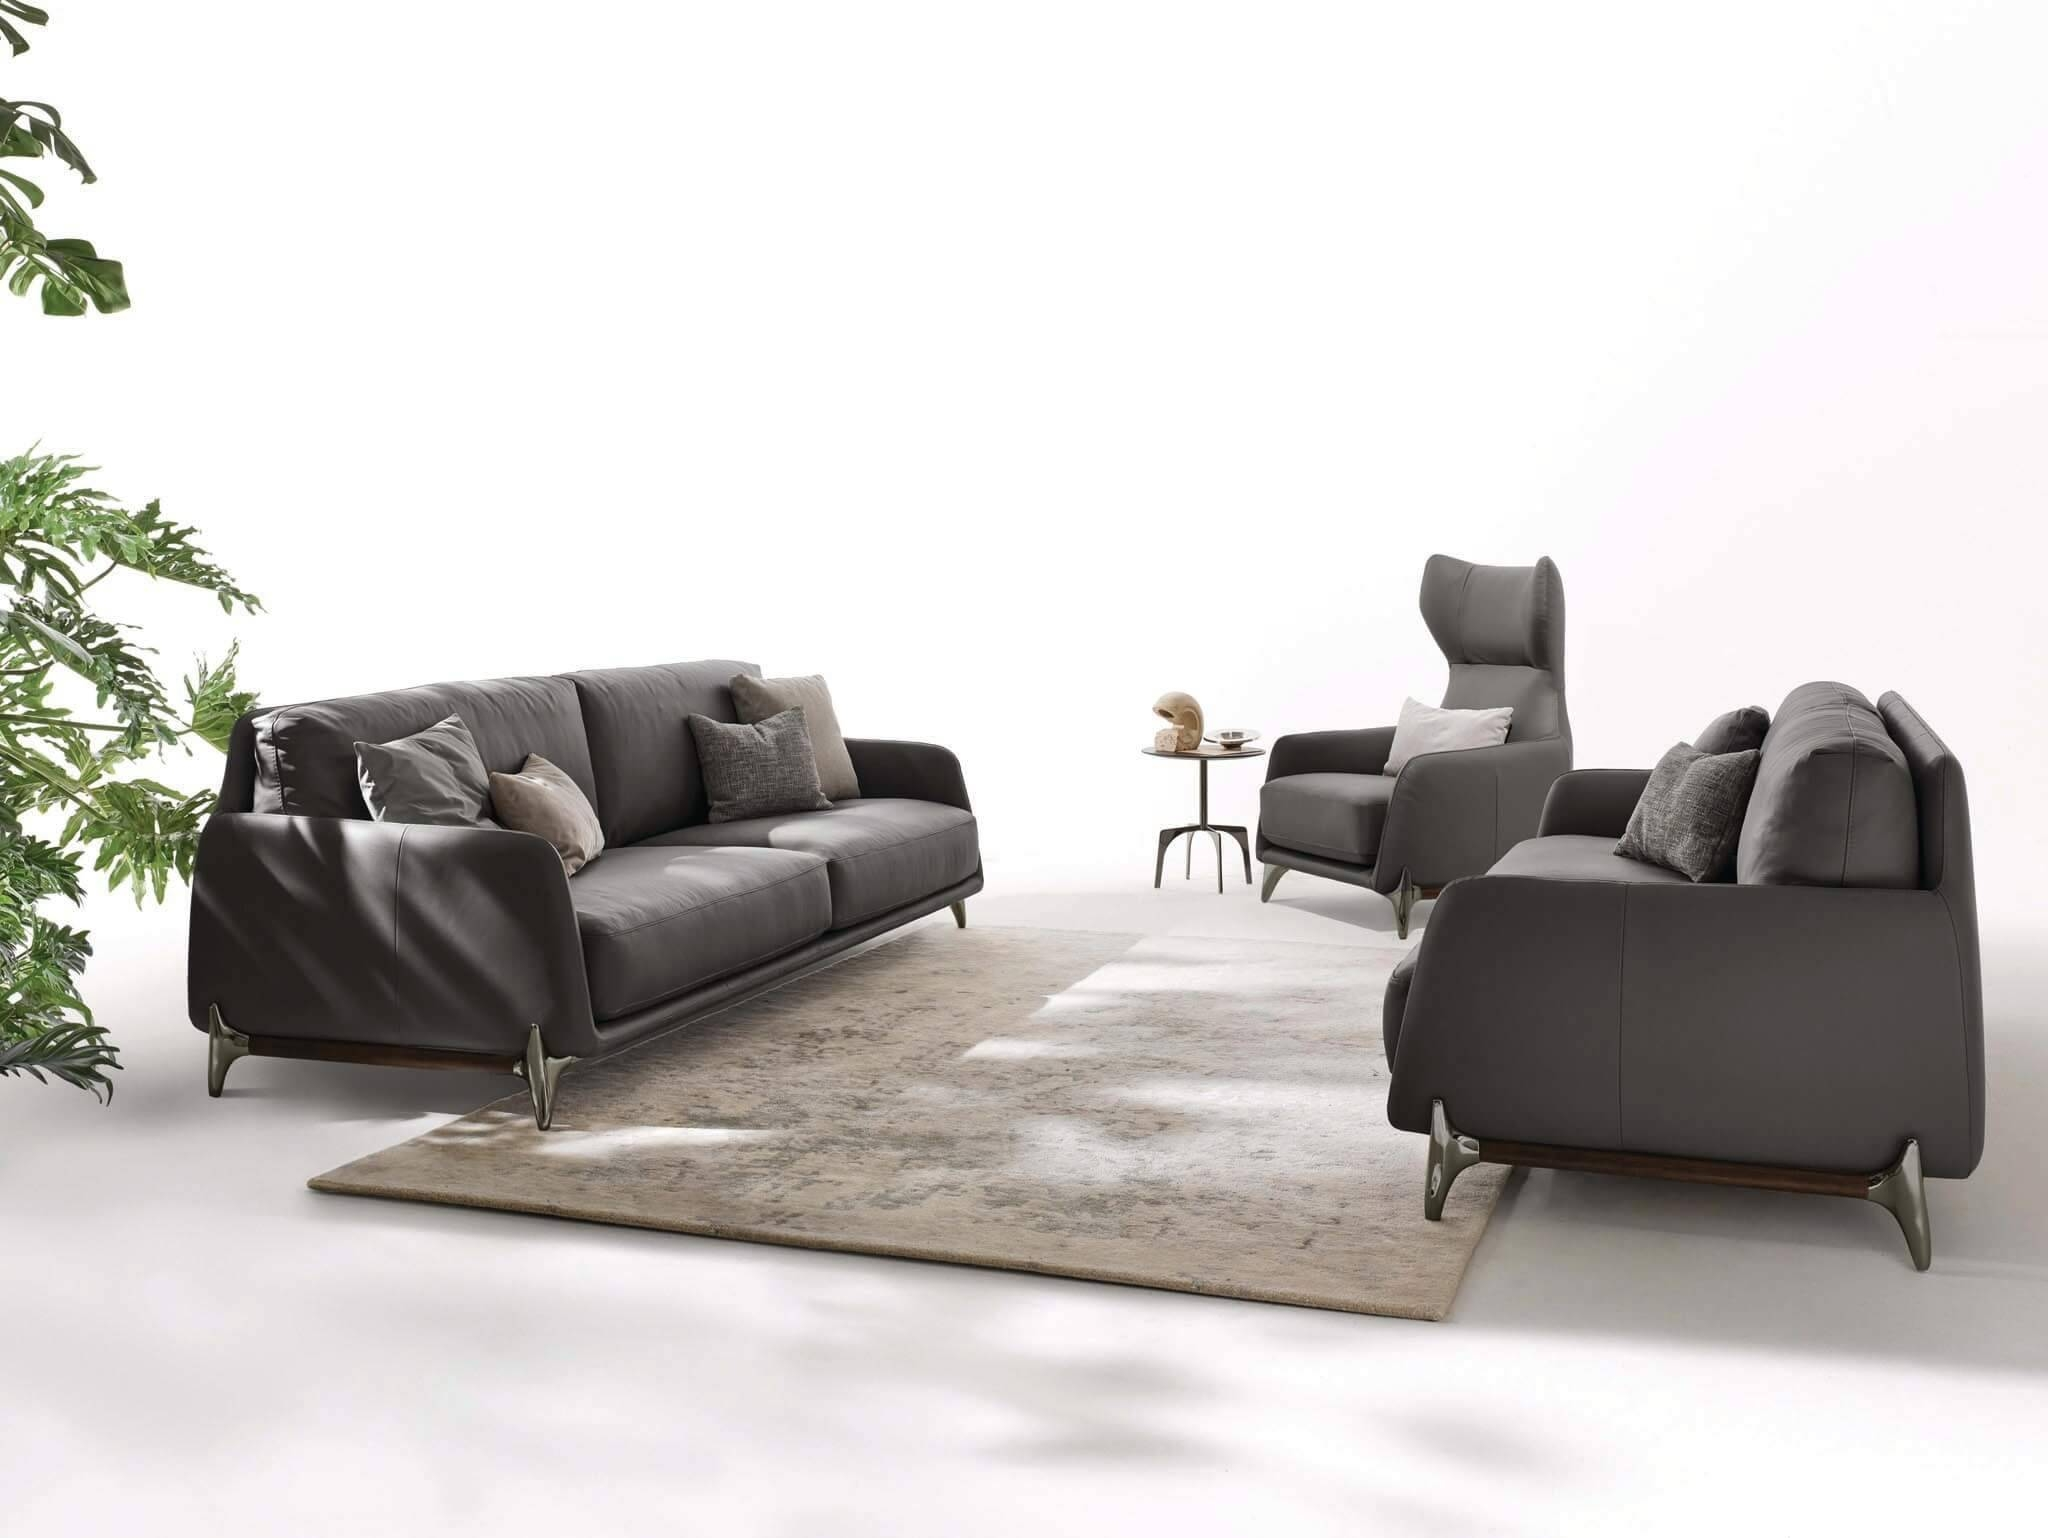 Elliot Sofa Sectional And Loveseat | Archisesto Chicago with regard to Elliott Sofa (Image 17 of 30)